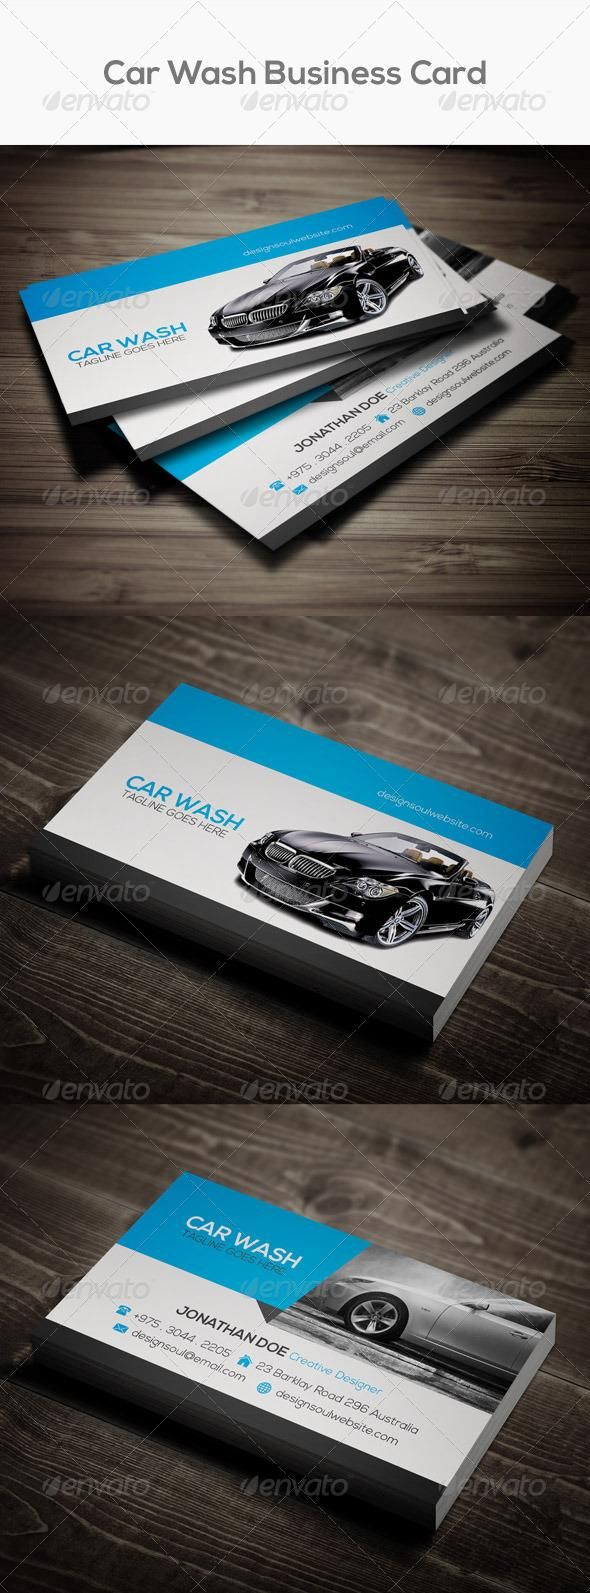 Car Wash Business Card Free Business Card Templates Car Wash Business Printable Business Cards